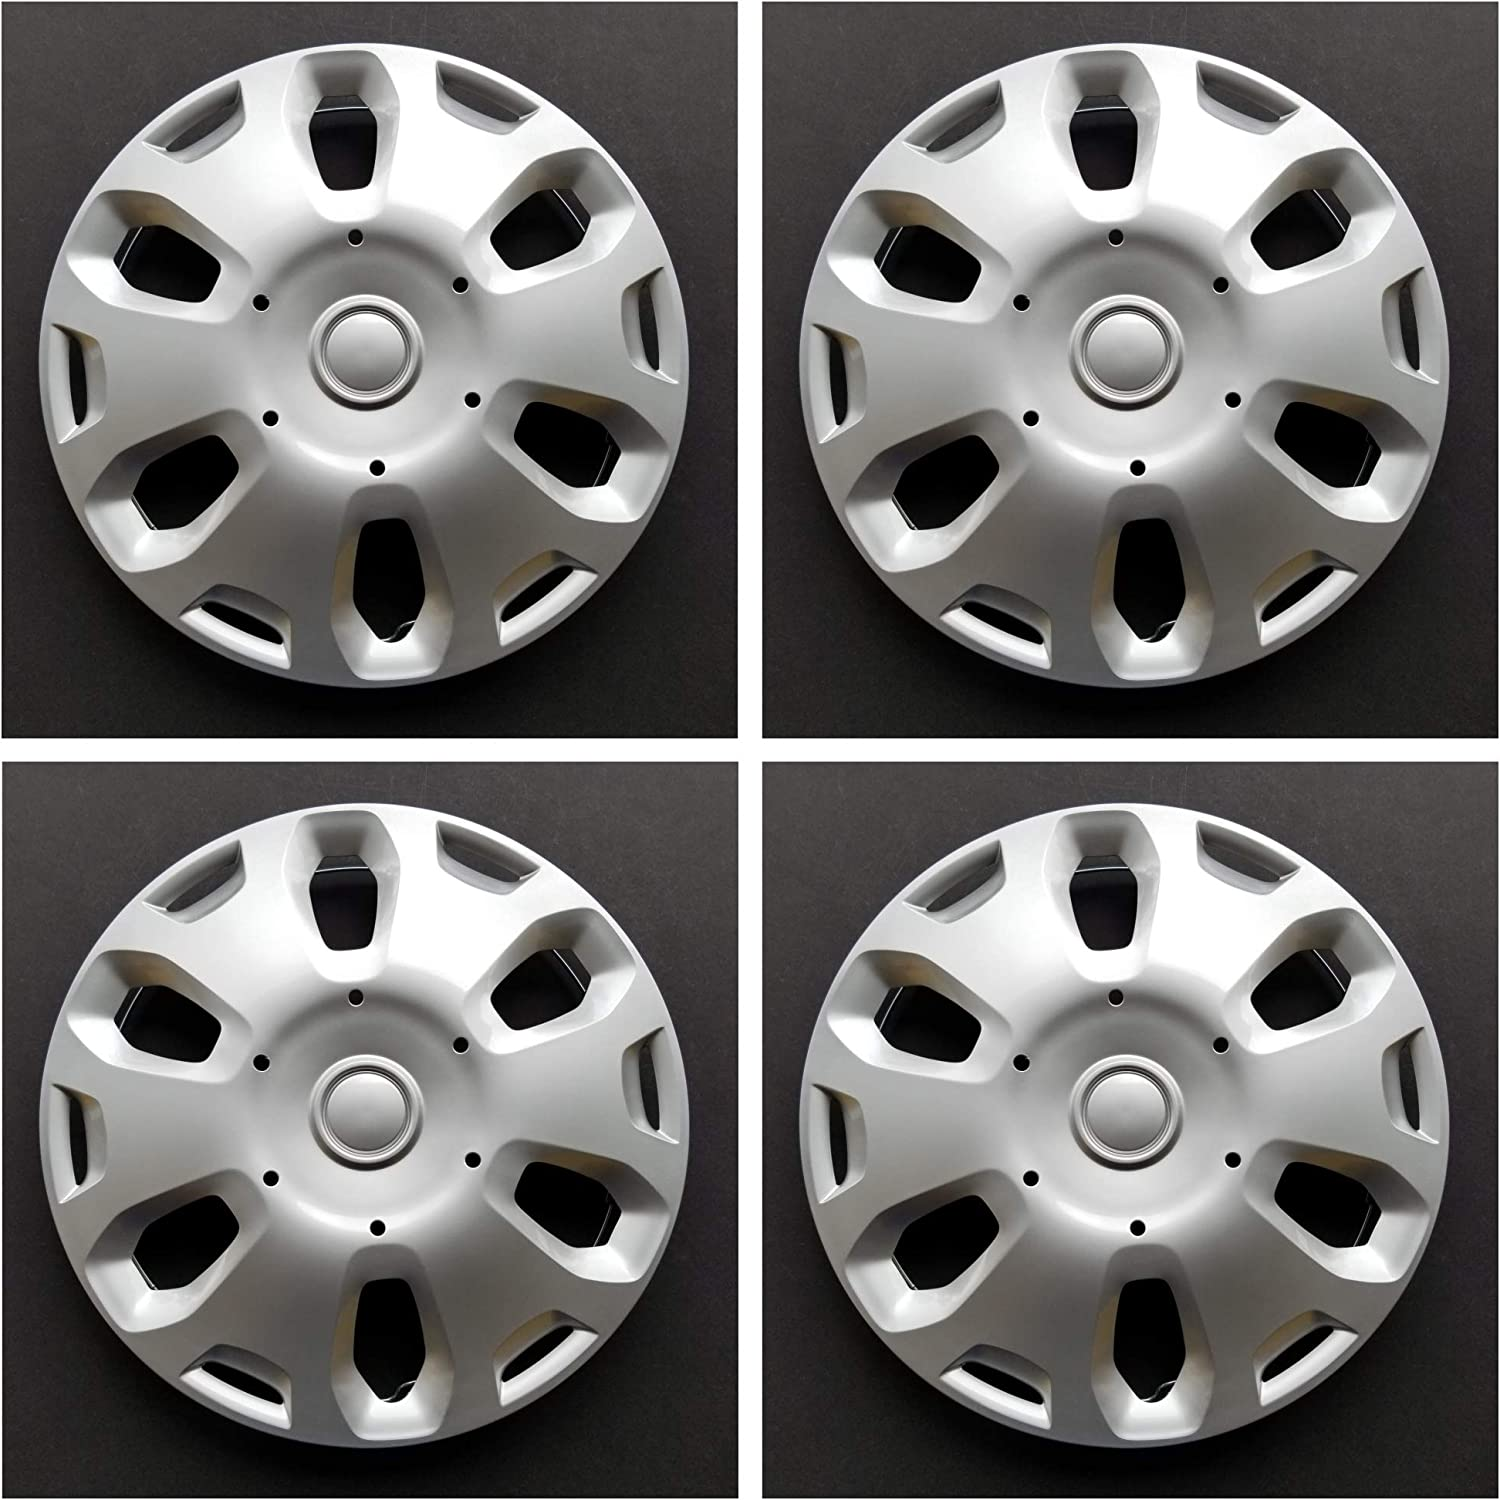 New Wheel Covers Replacements Fits 2010 2013 Ford Transit Connect 15 Inch; 6 Spoke; Silver Color; Plastic; Set of 4; Spring Steel Clip